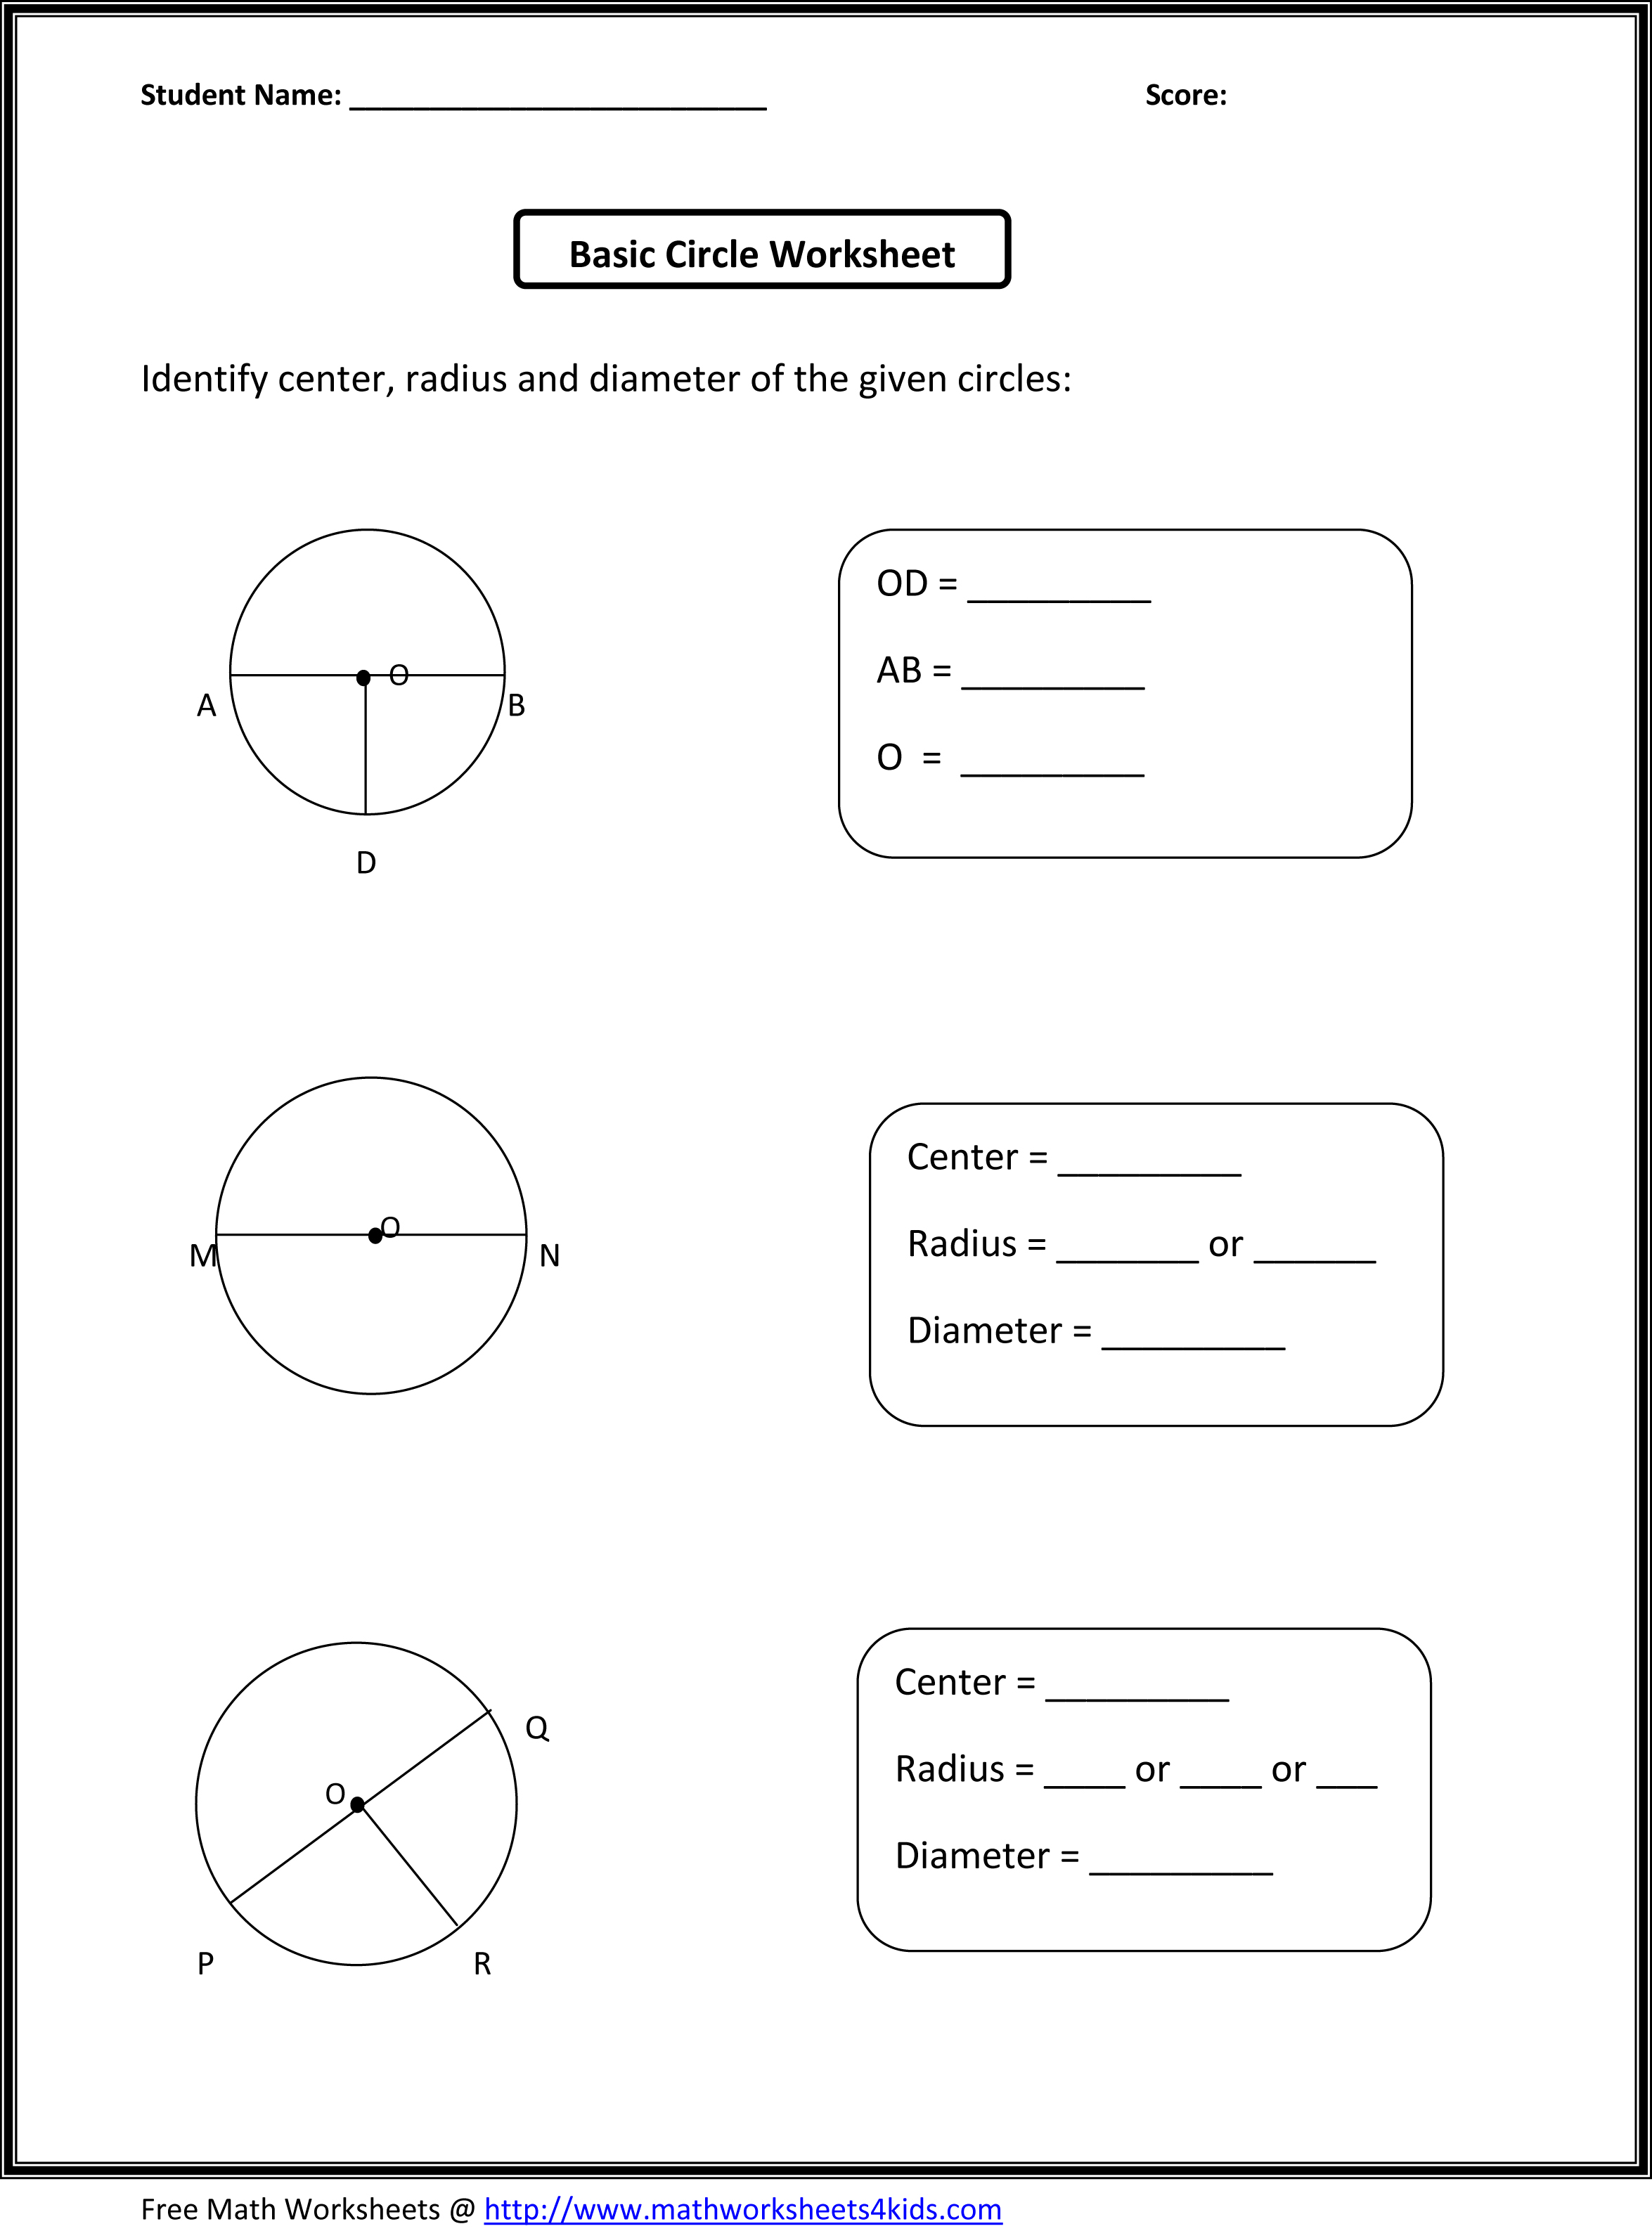 Printables Math Worksheets For 6 Graders math for 6 graders worksheets abitlikethis third grade worksheets